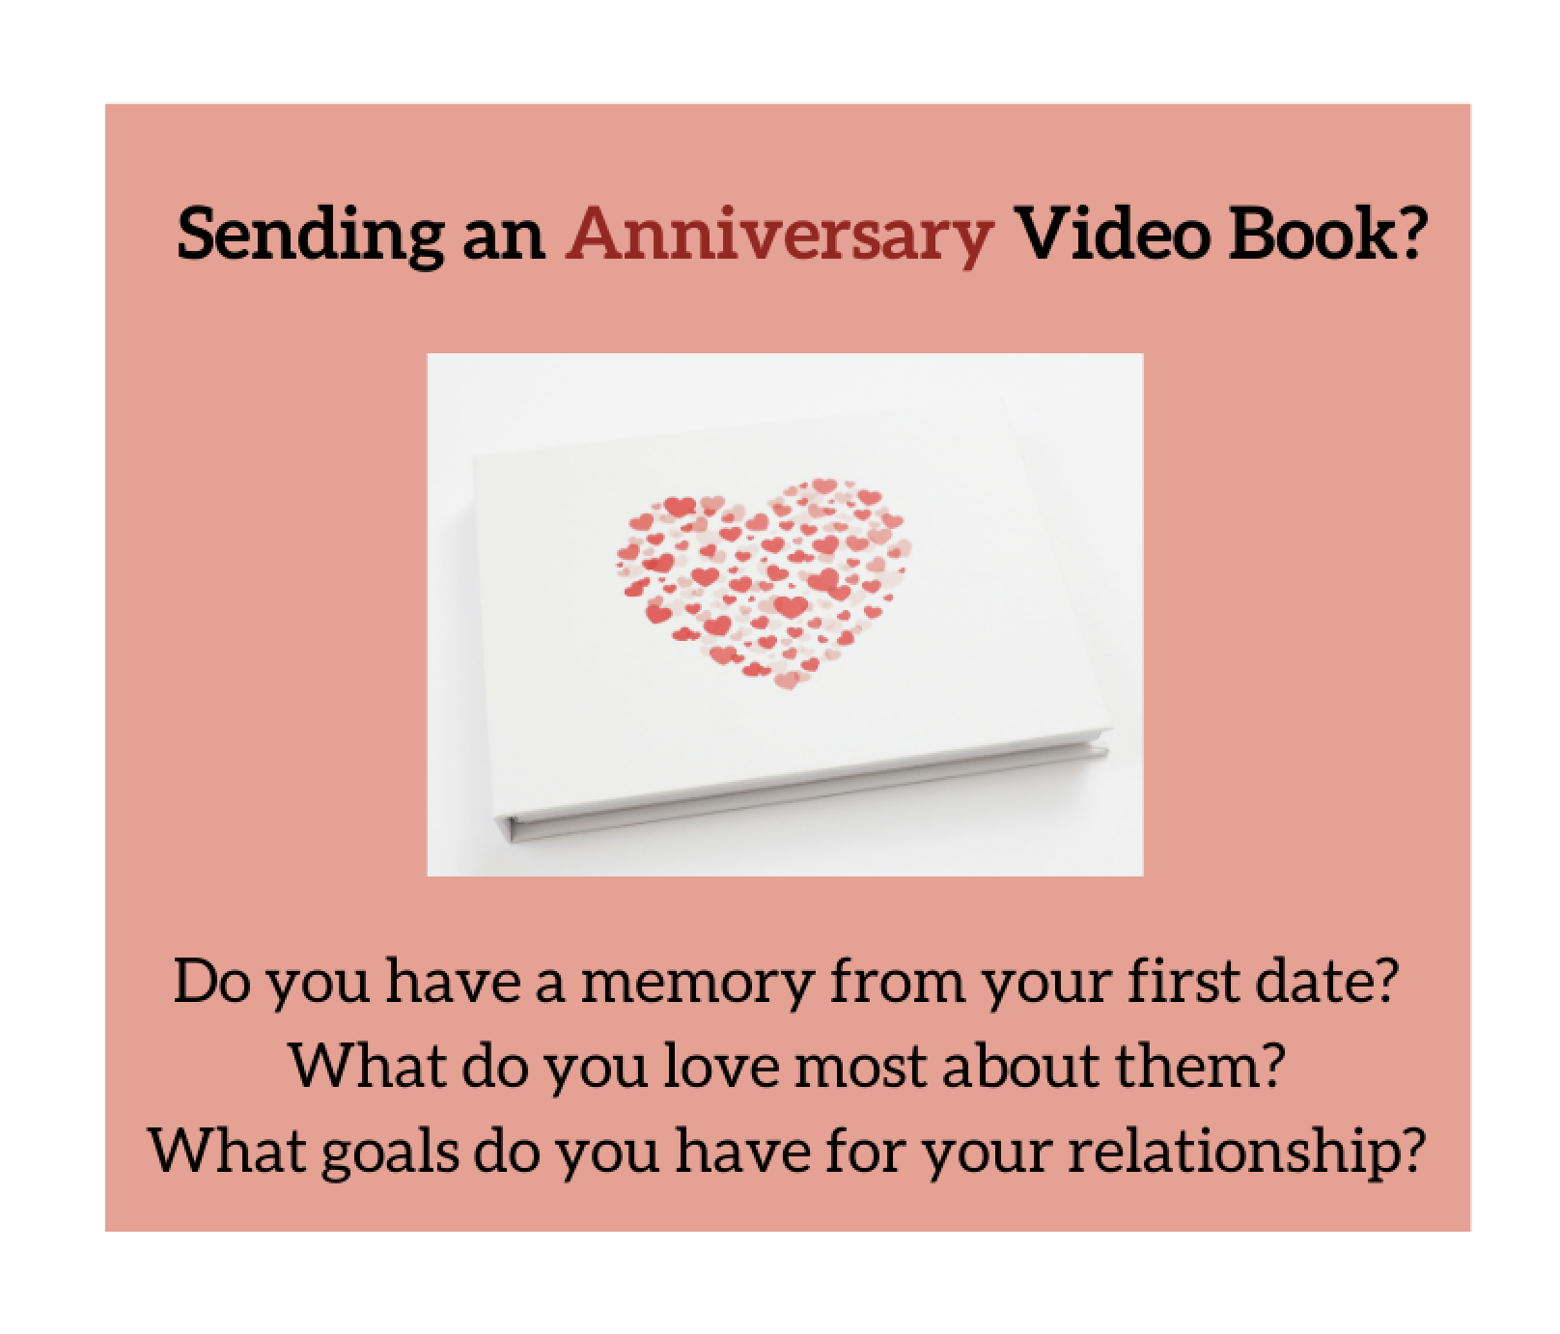 Video book with hearts on the cover